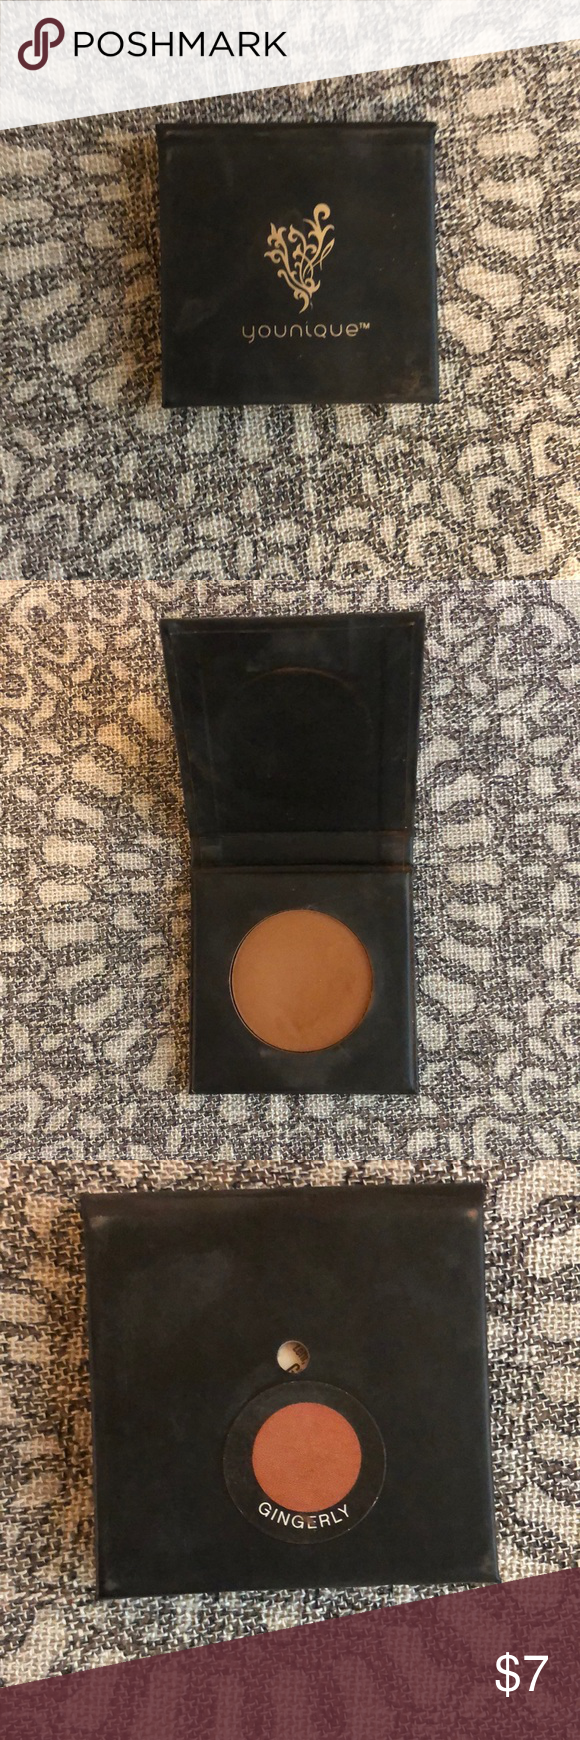 Younique Pressed eye shadow- Ginger Matte brown. Used a few times. Younique Makeup Eyeshadow #youniquepressedshadows